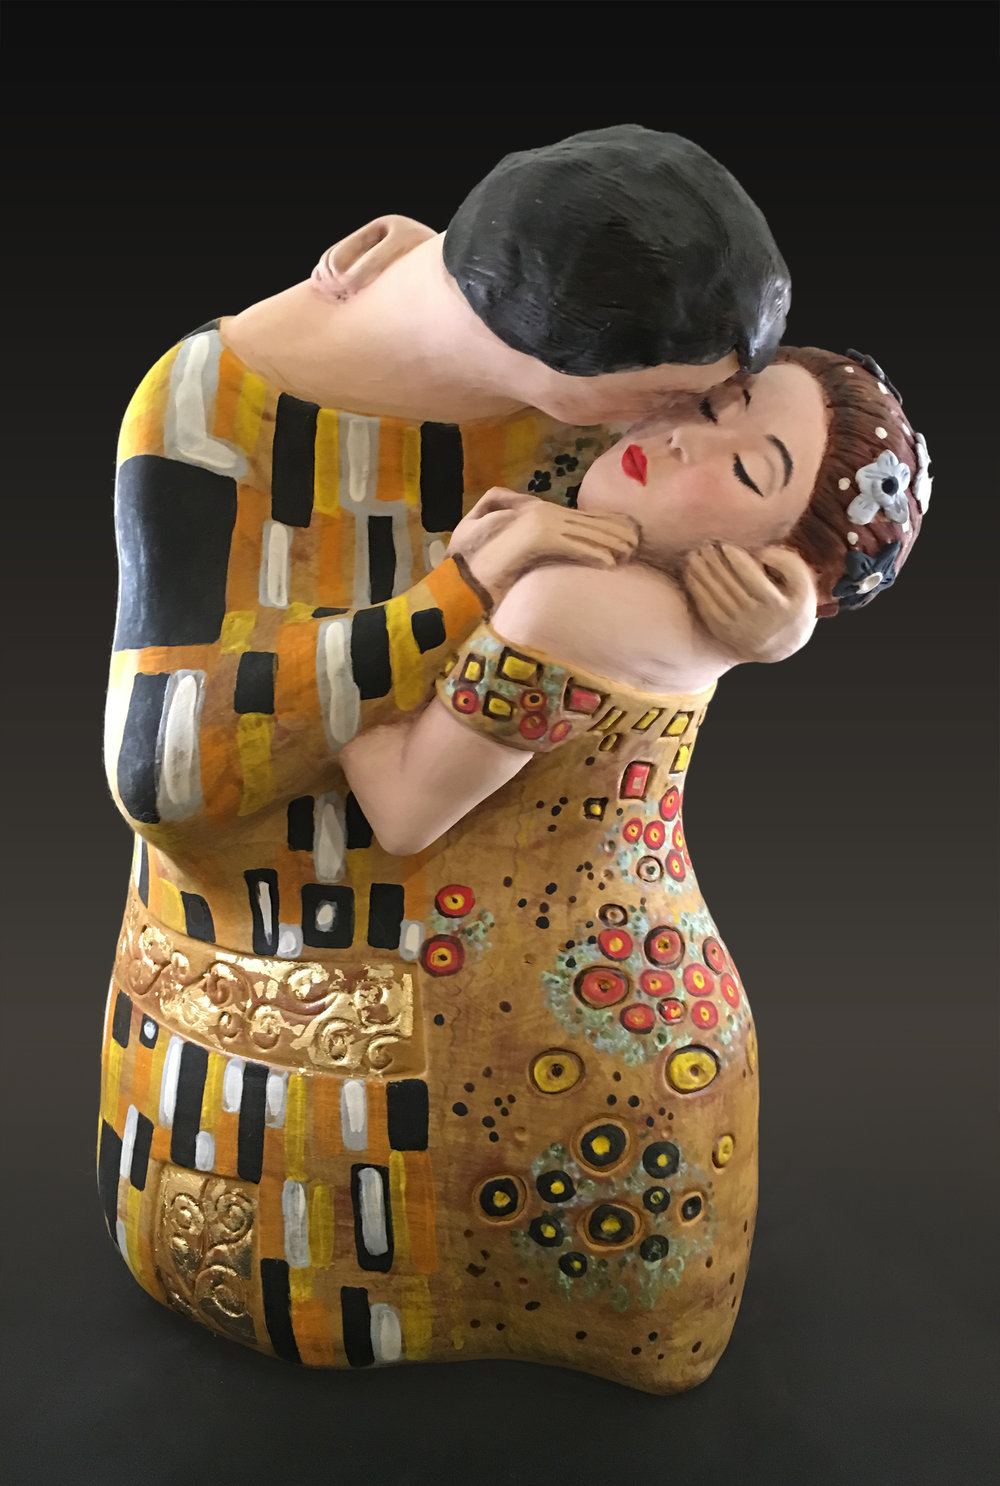 Sculpture 1 (based on The Kiss (Klimt))